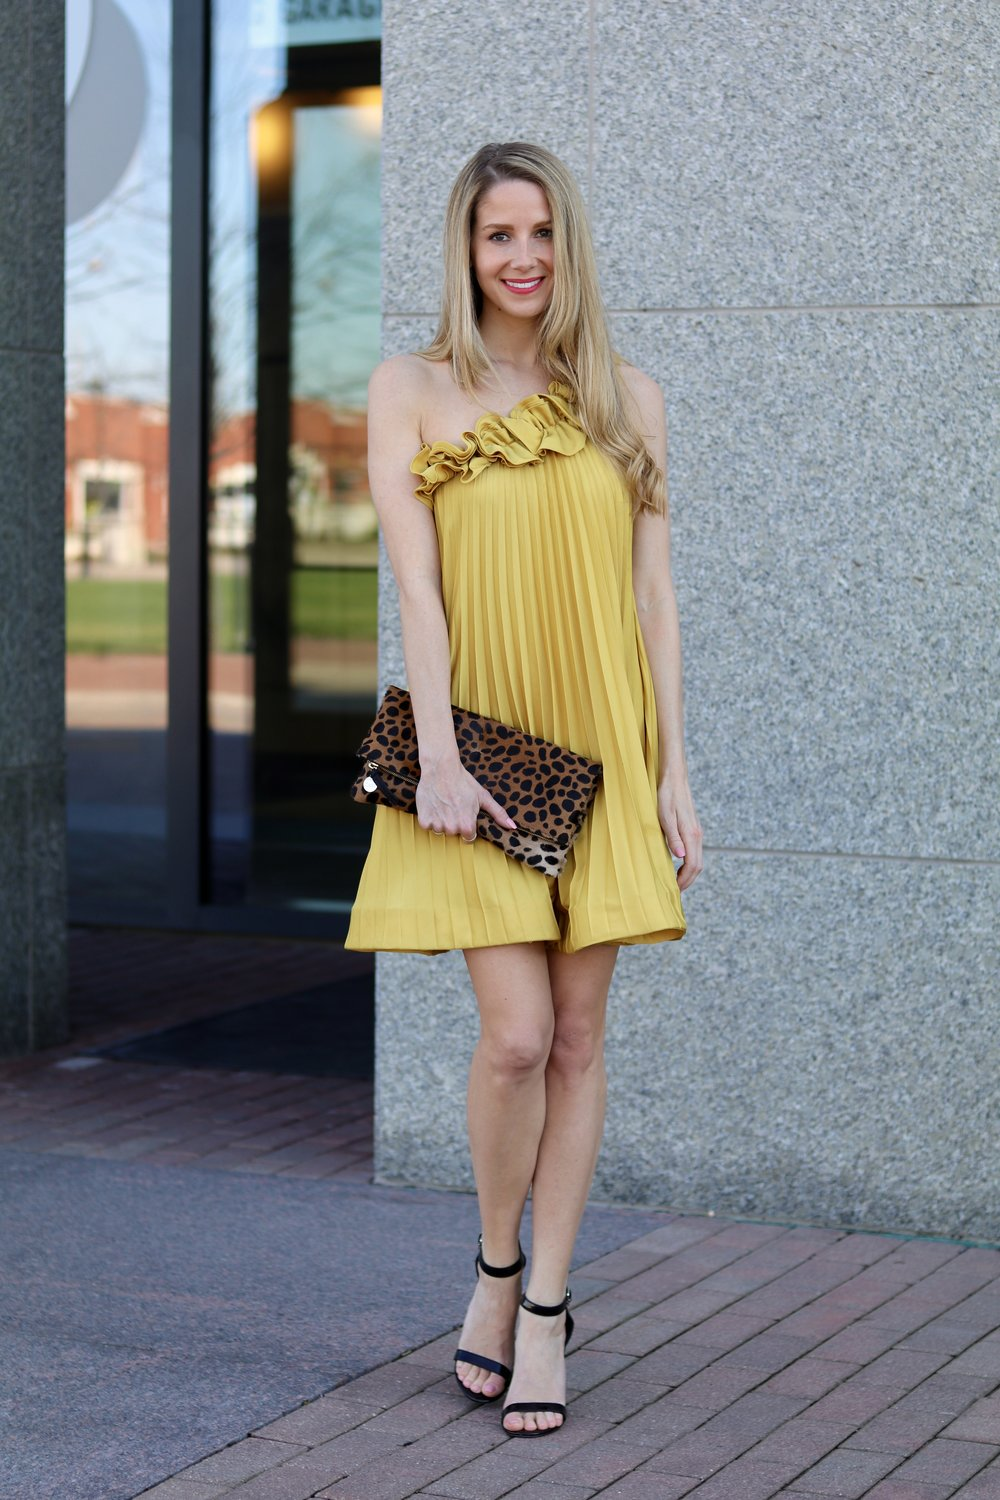 gilt edge | bcbg dress